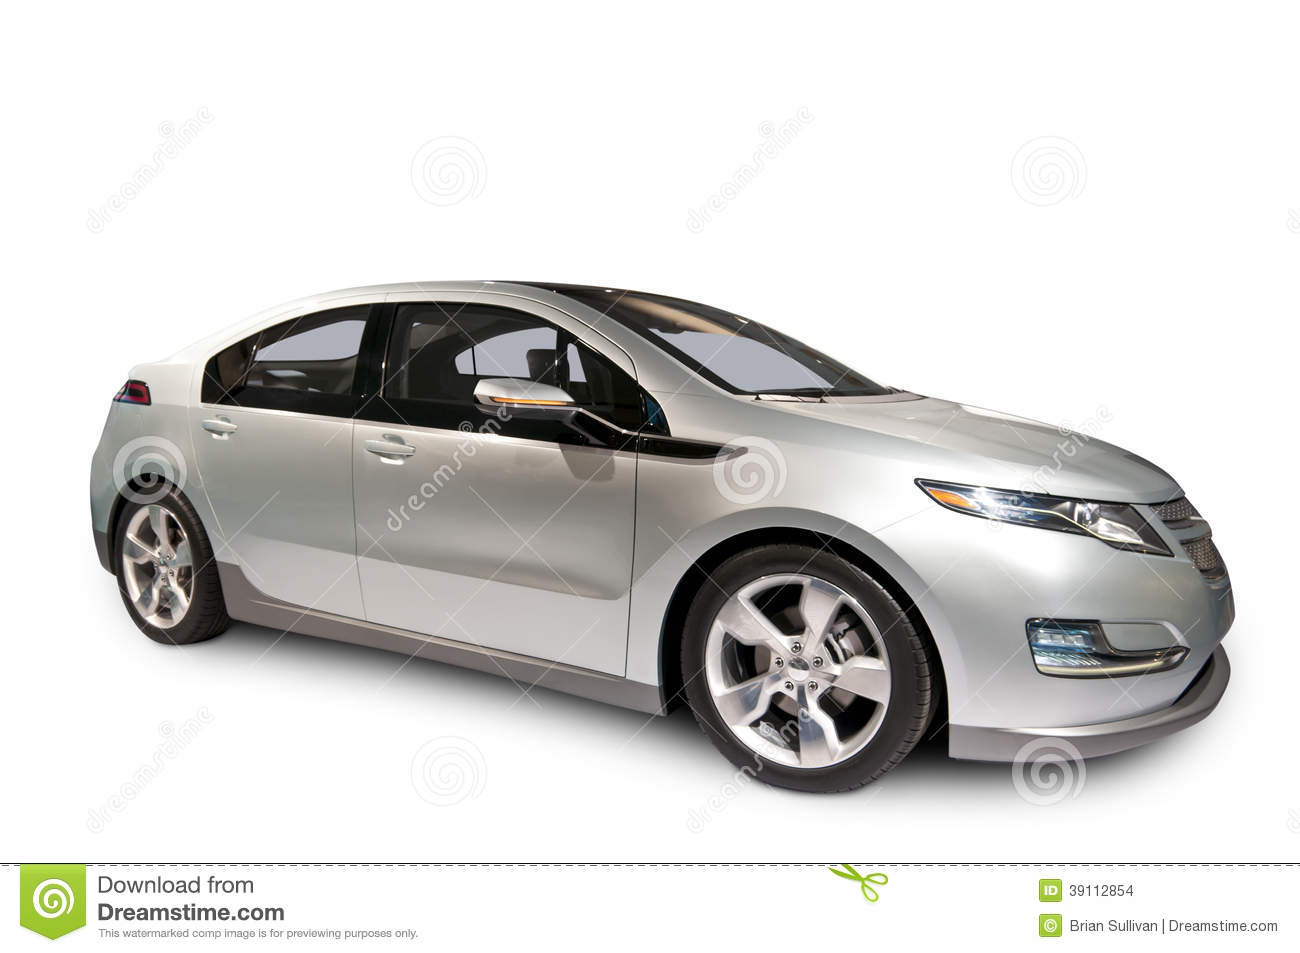 chevrolet volt hybrid car isolated on white stock photo image 39112854. Black Bedroom Furniture Sets. Home Design Ideas